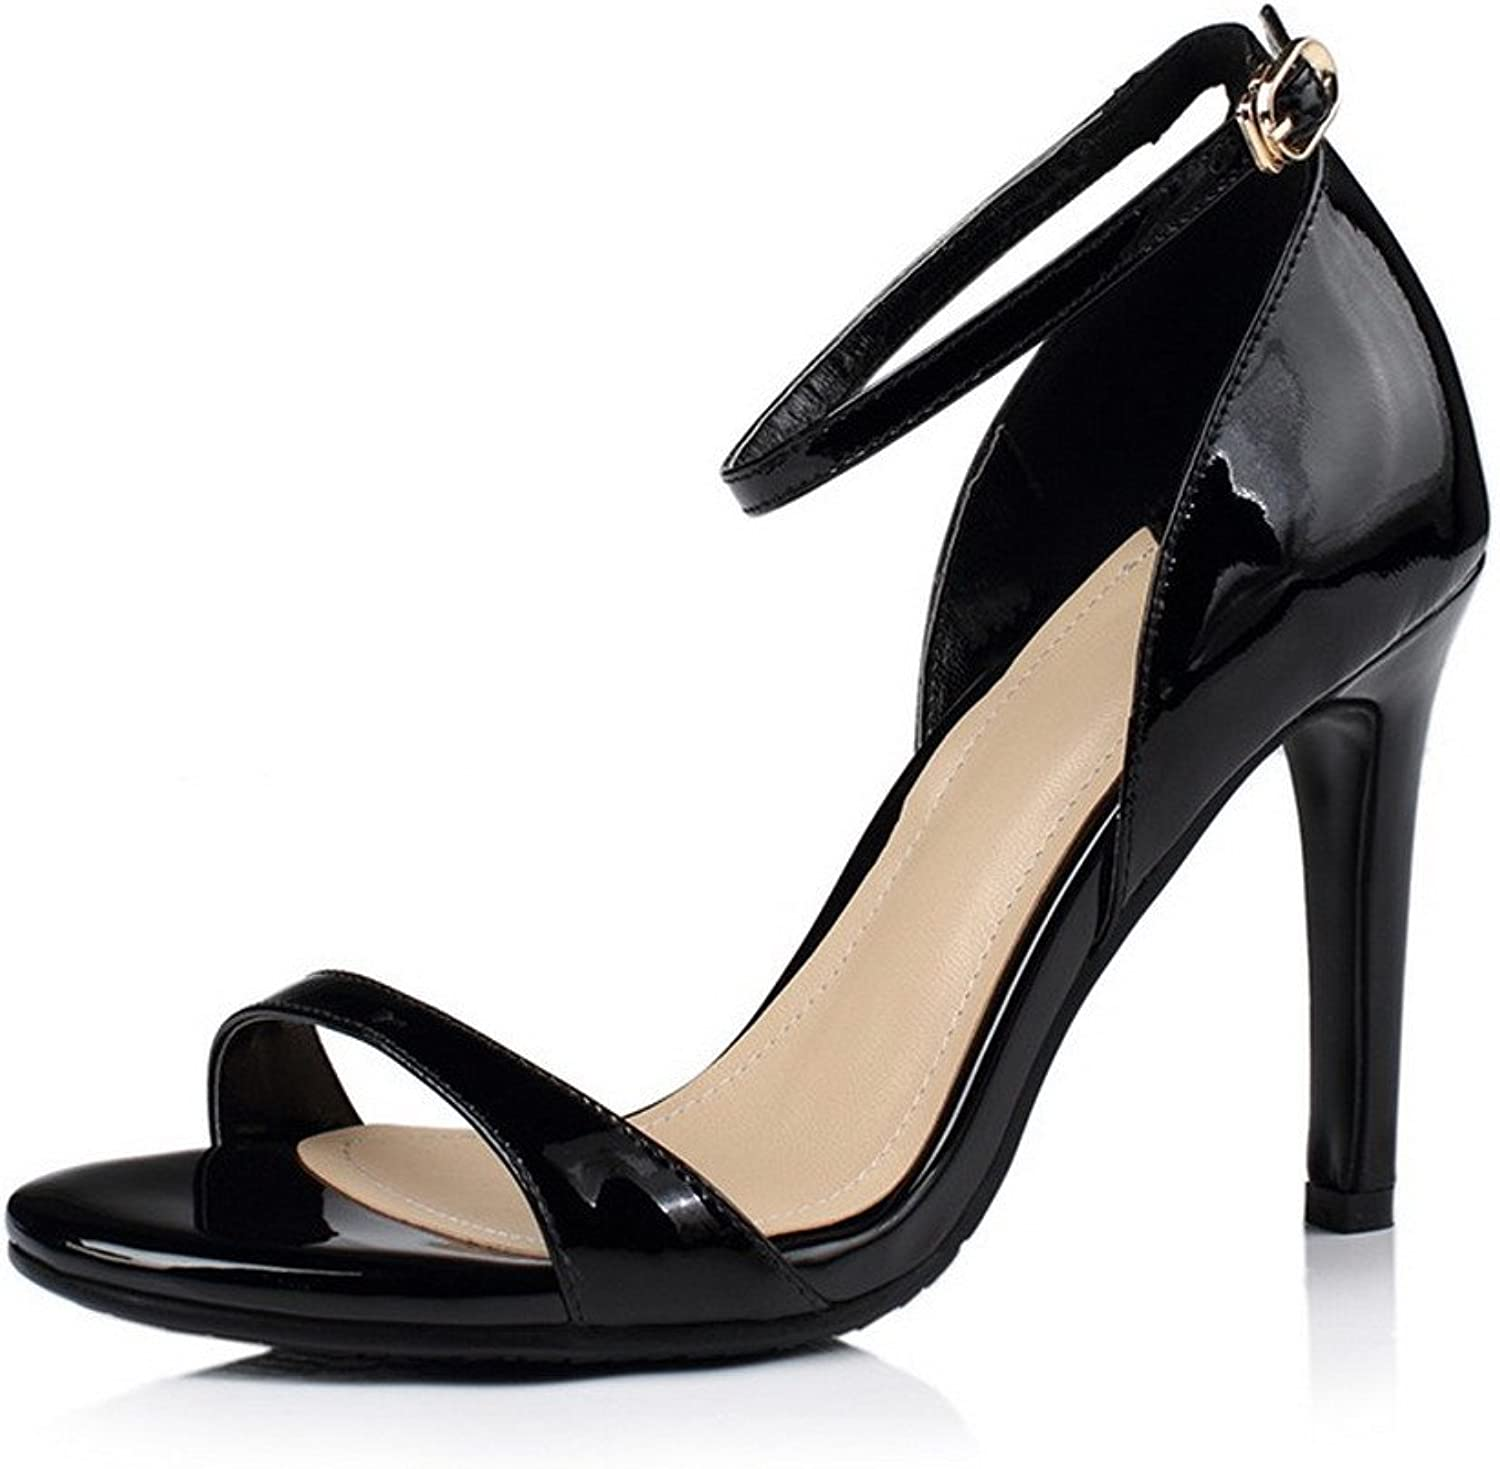 WeenFashion Women's High-Heels Patent Leather Solid Buckle Open Toe Sandals